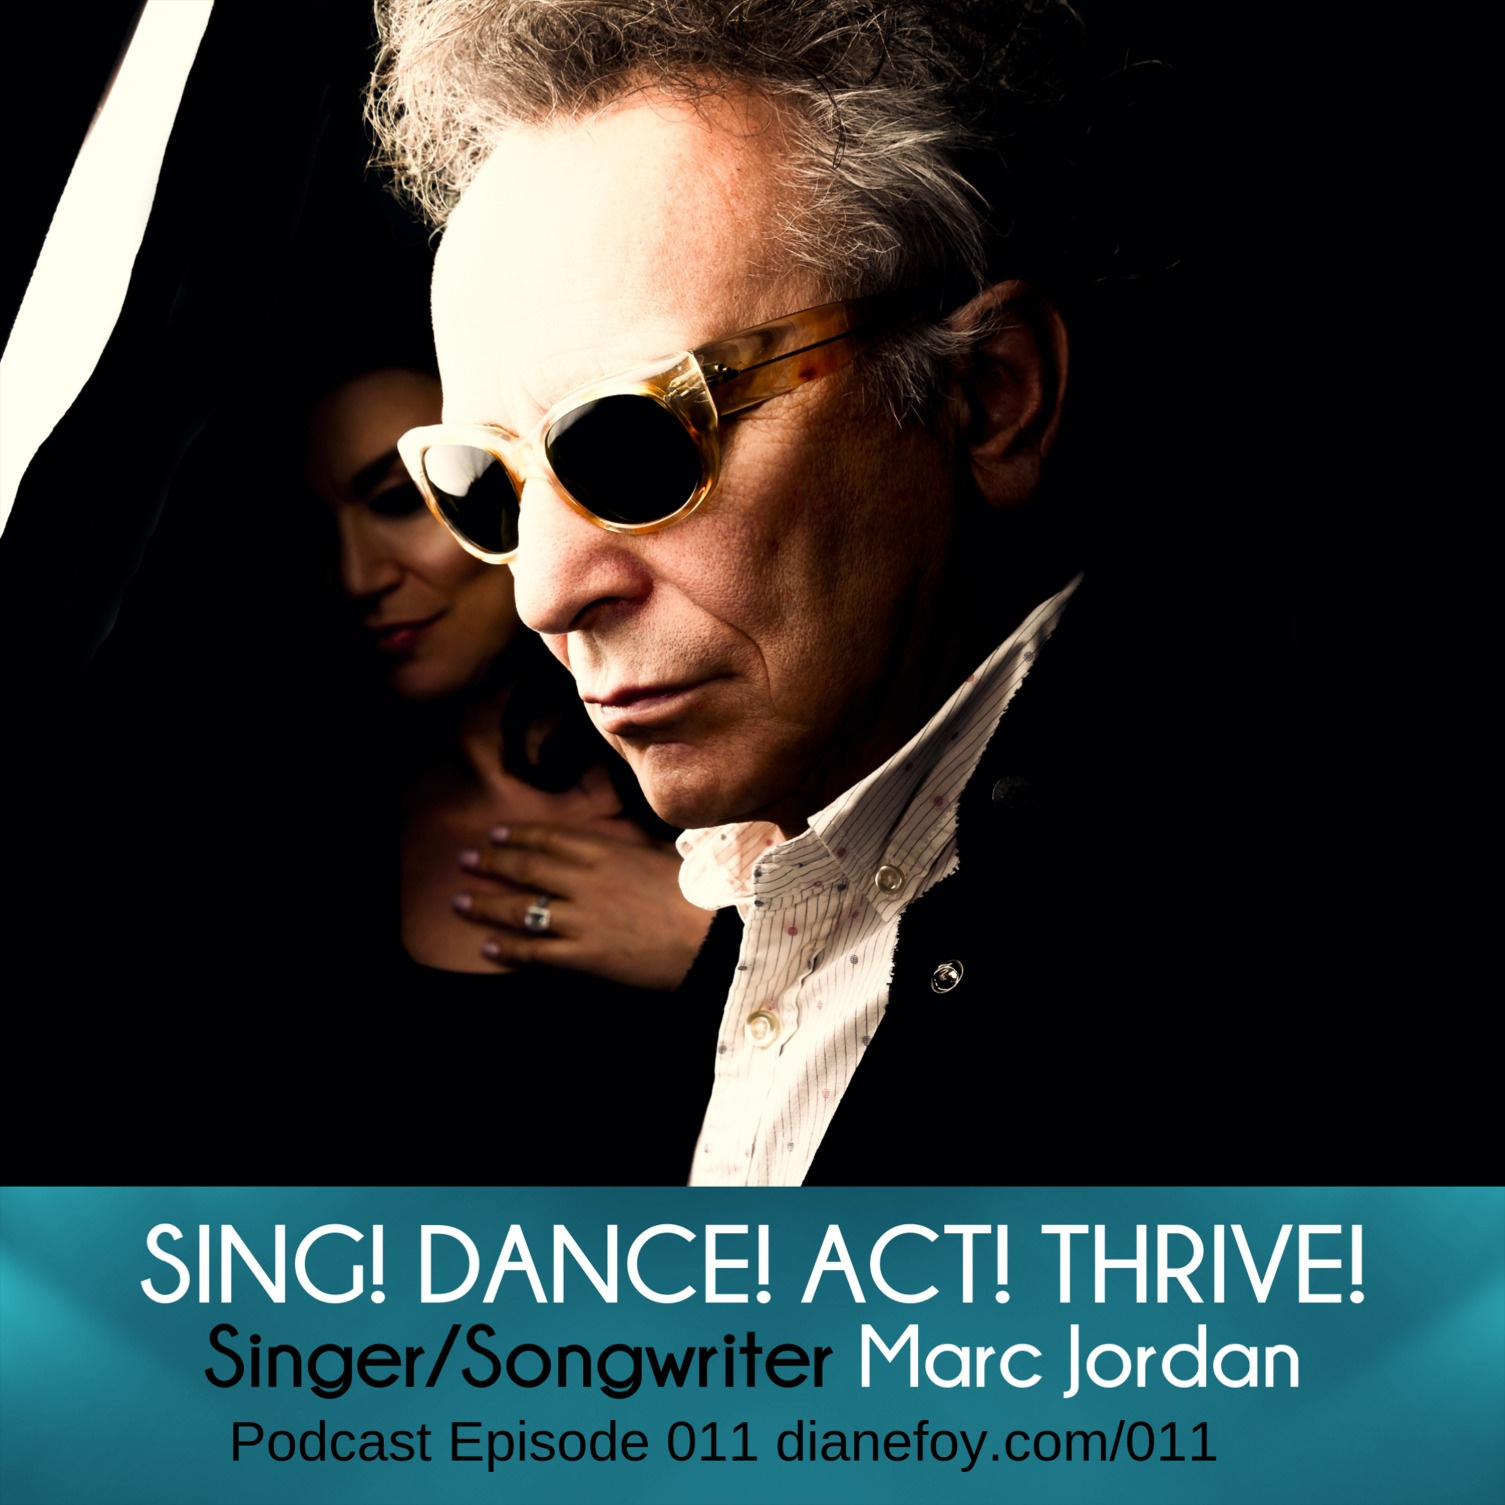 Marc Jordan, Singer/Songwriter